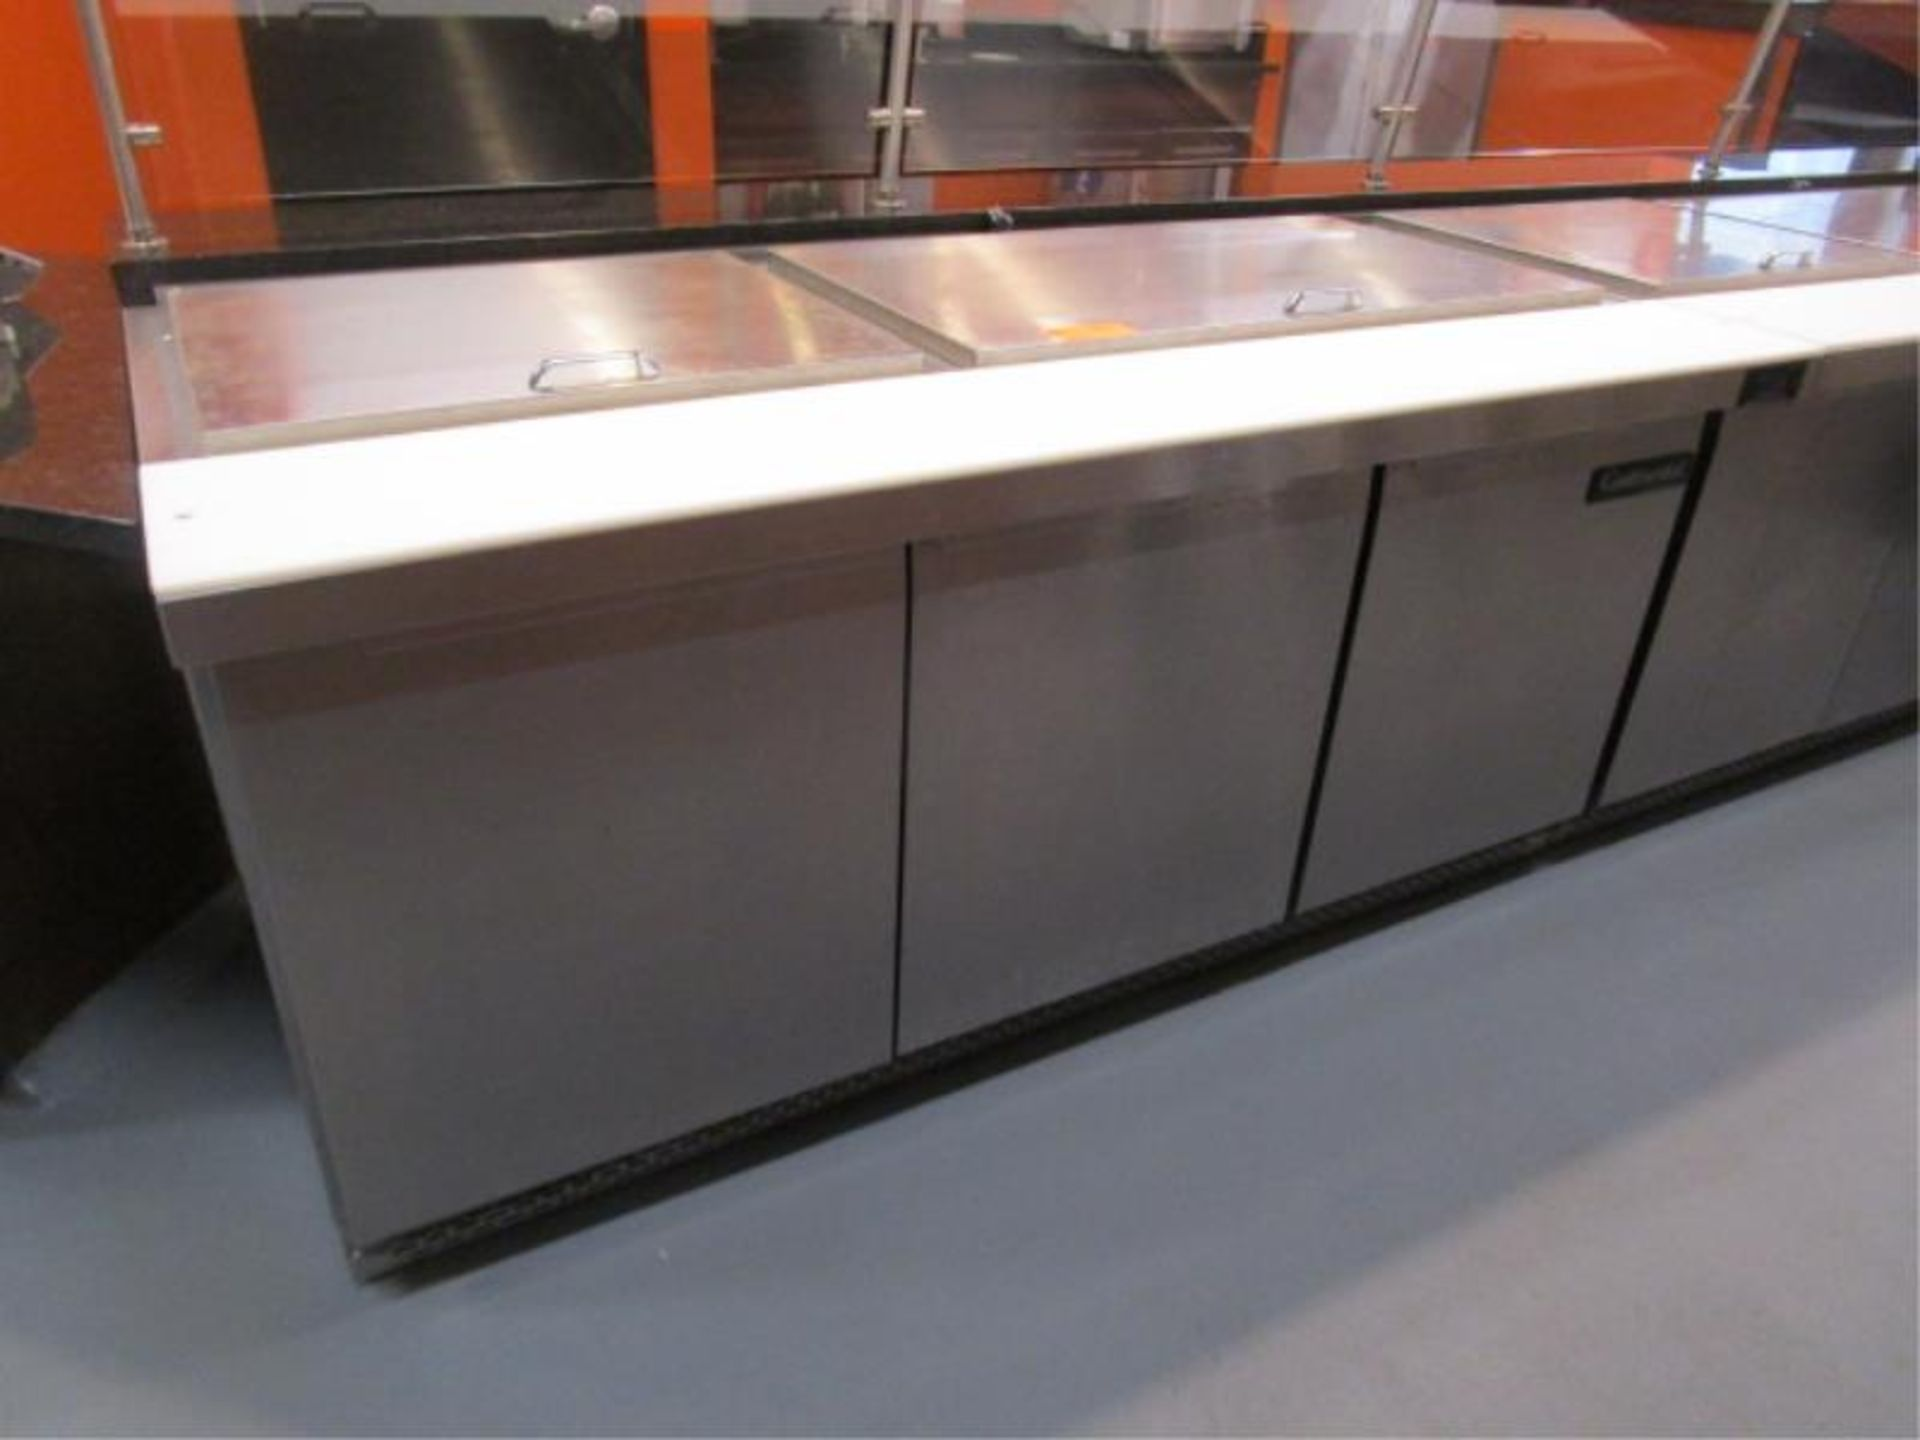 Lot 23 - Continental Pizza or Sandwich Prep Unit, Model: SW72, SN: 15758737